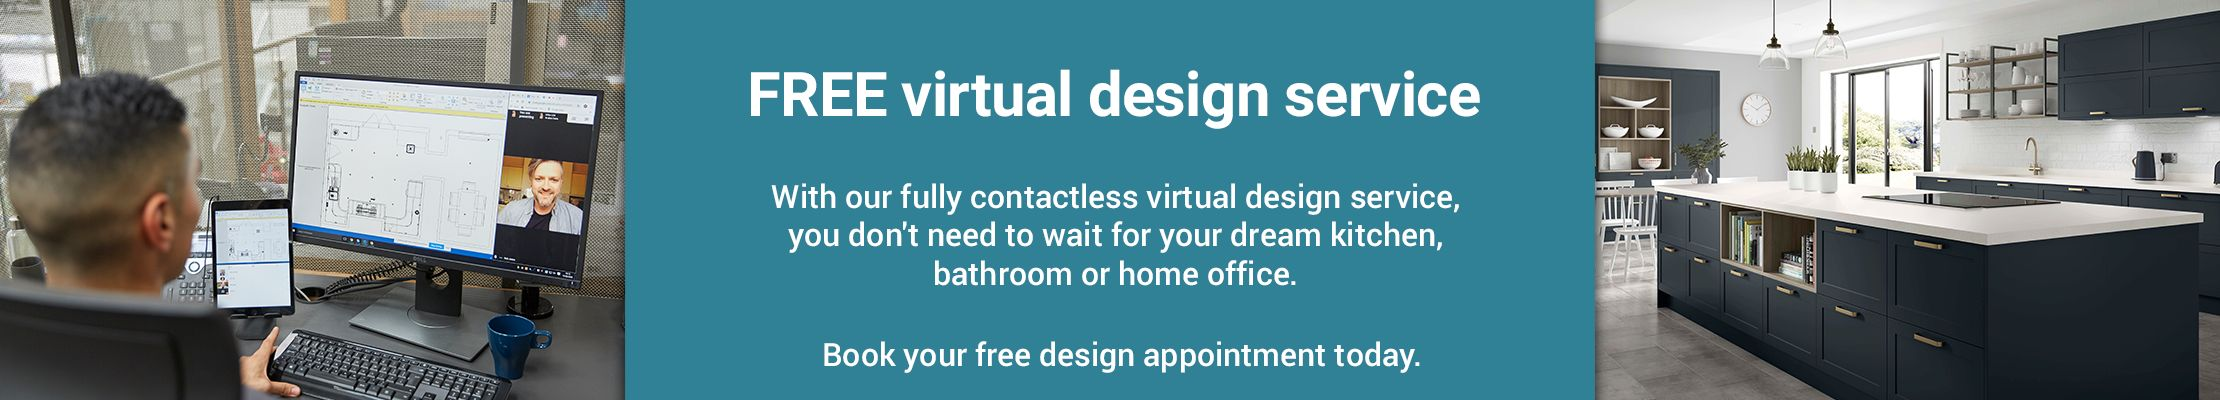 Book your FREE design service